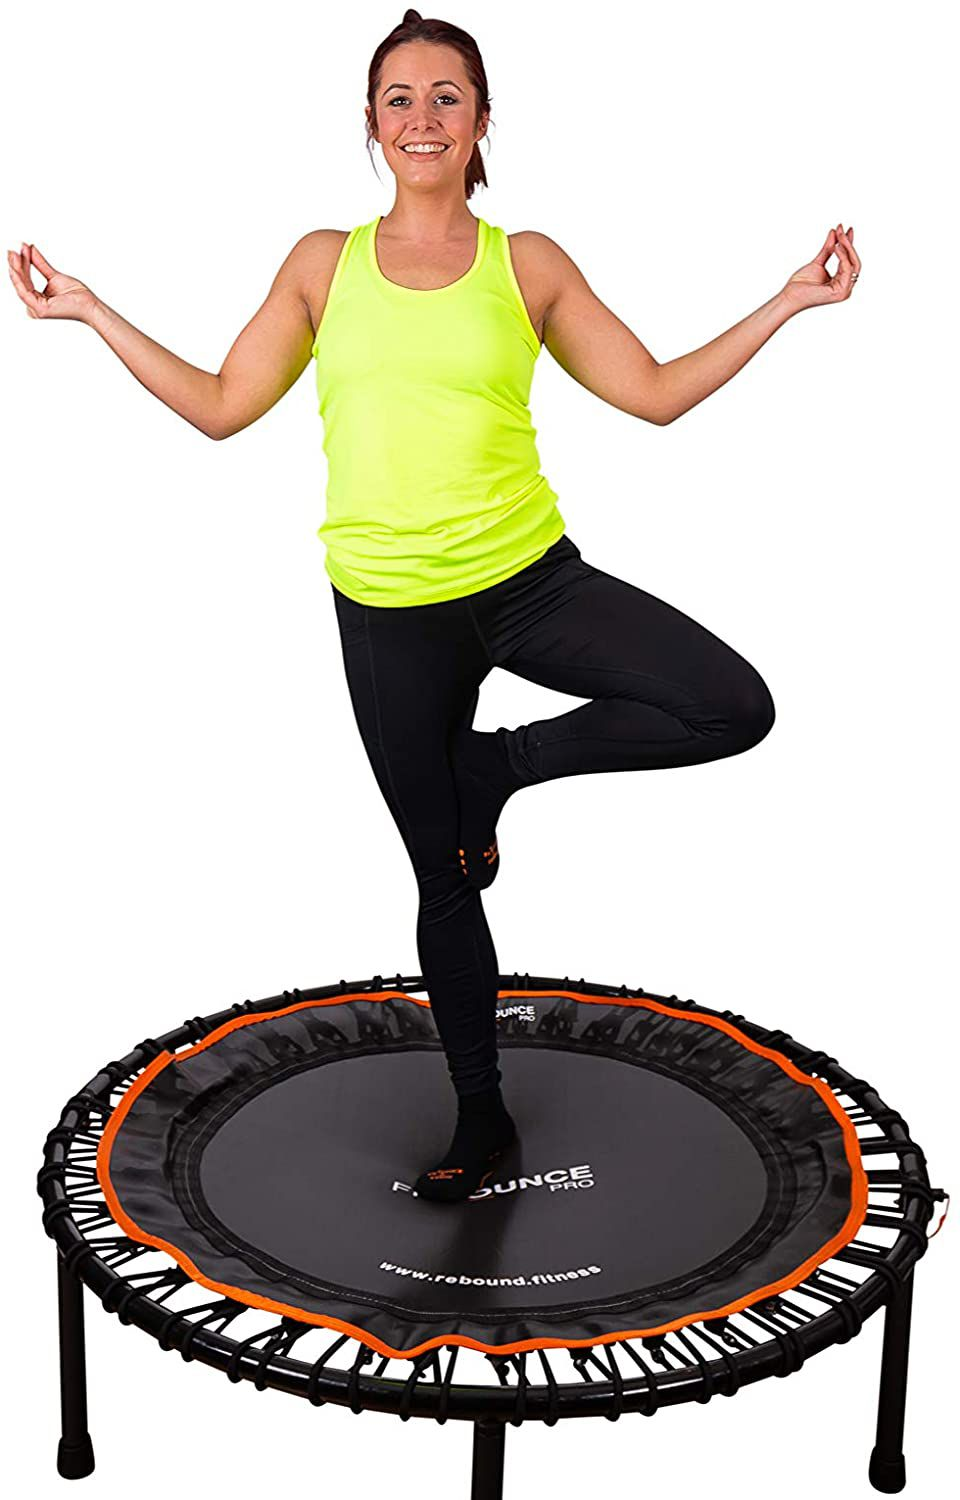 Rebound Fitness FitBounce Pro USA Bungee Rebounder